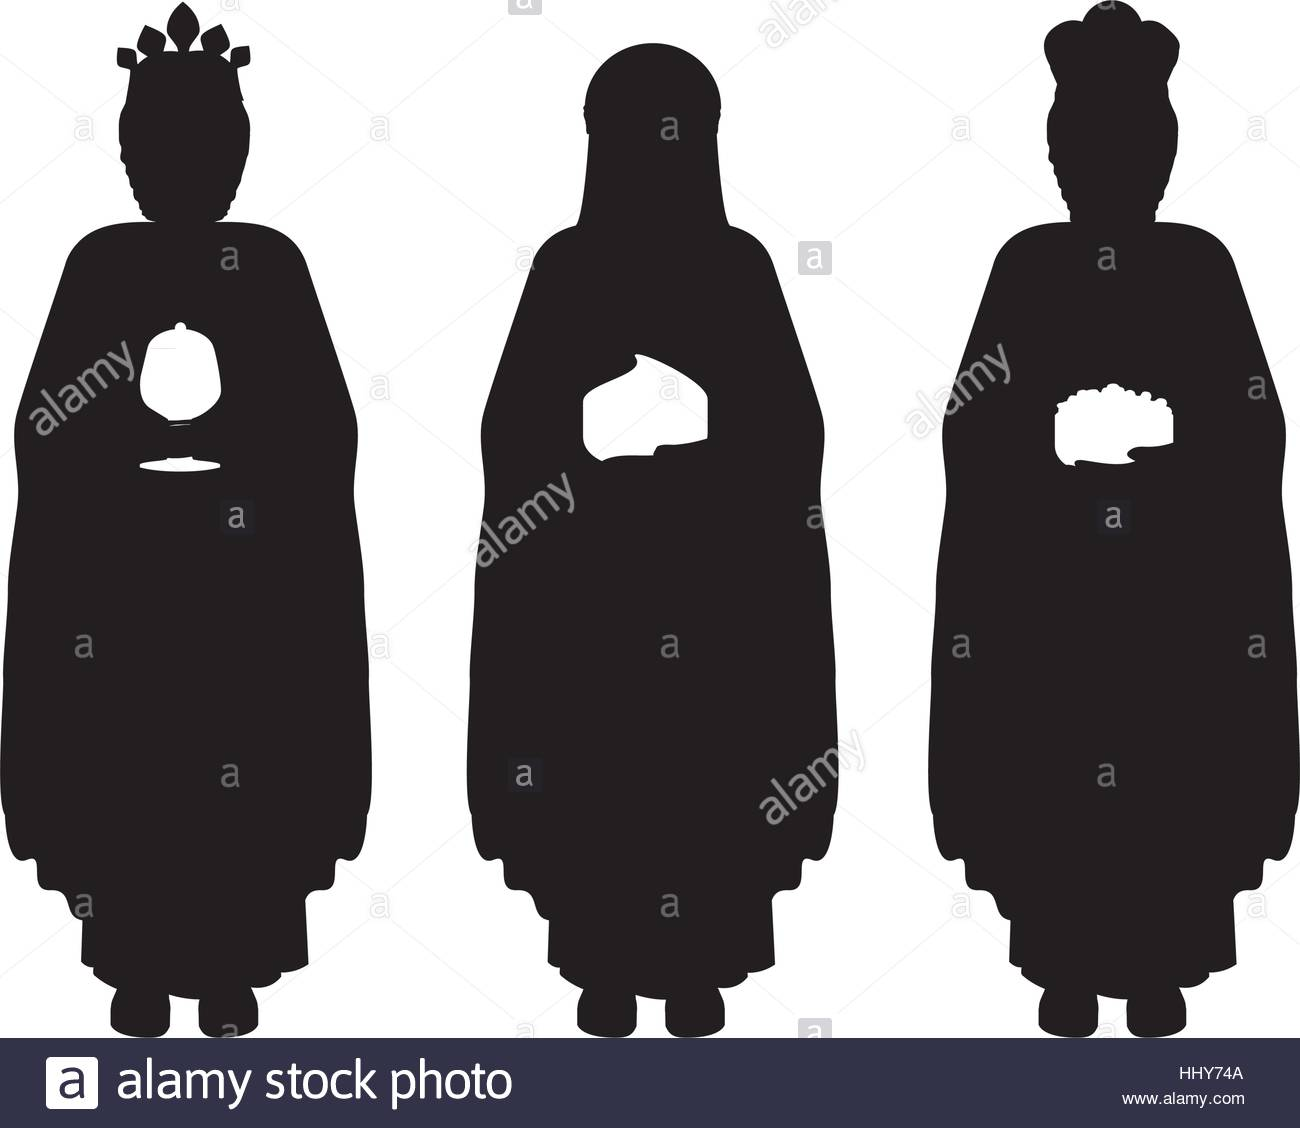 1300x1128 Silhouette Full Body Wise Men With Gifts Vector Illustration Stock